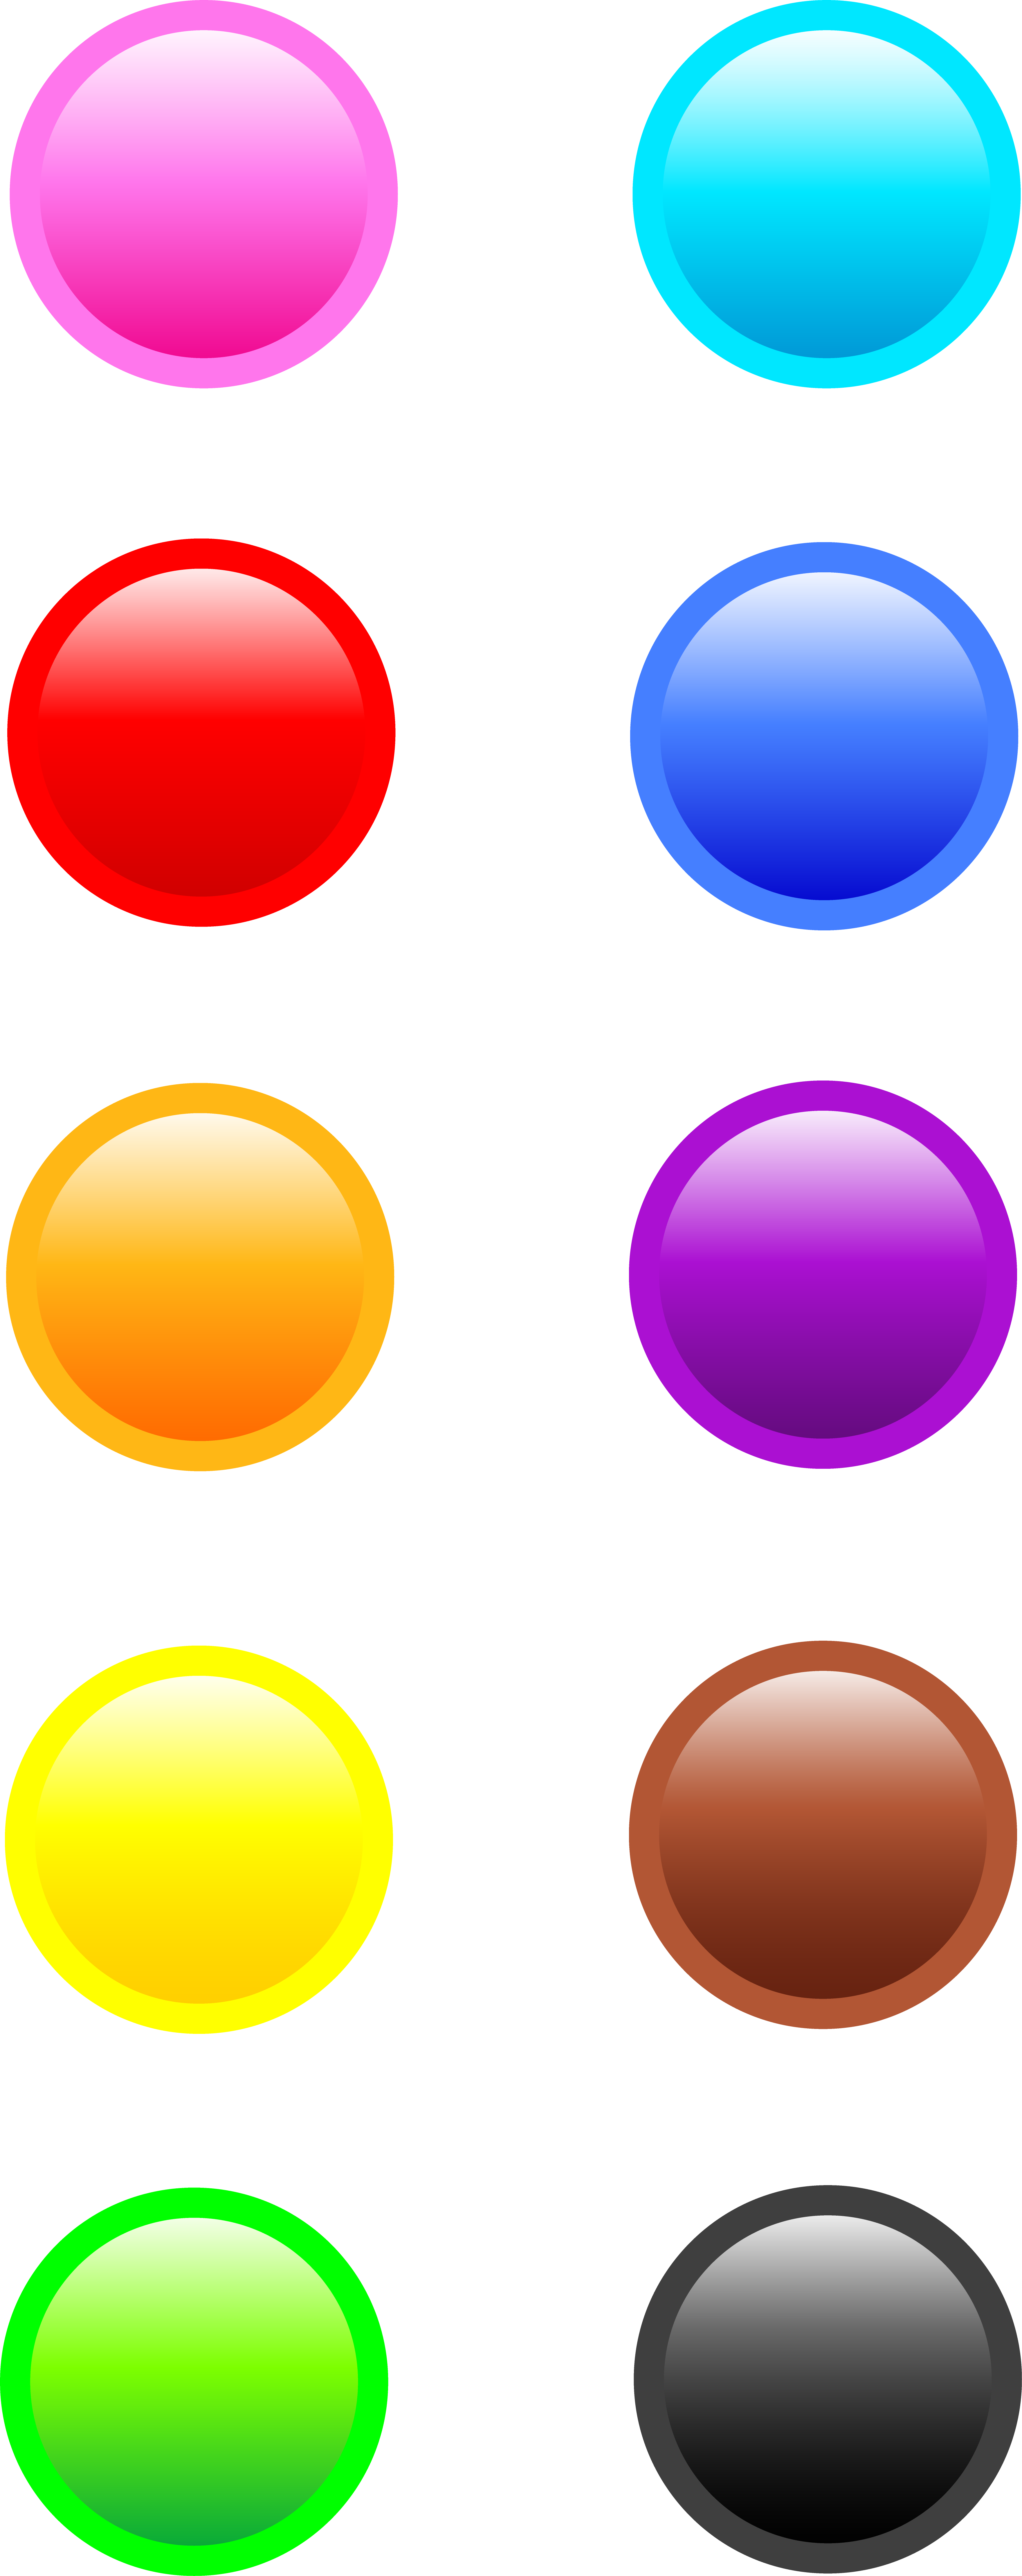 Pin buttons free download. Button clipart website